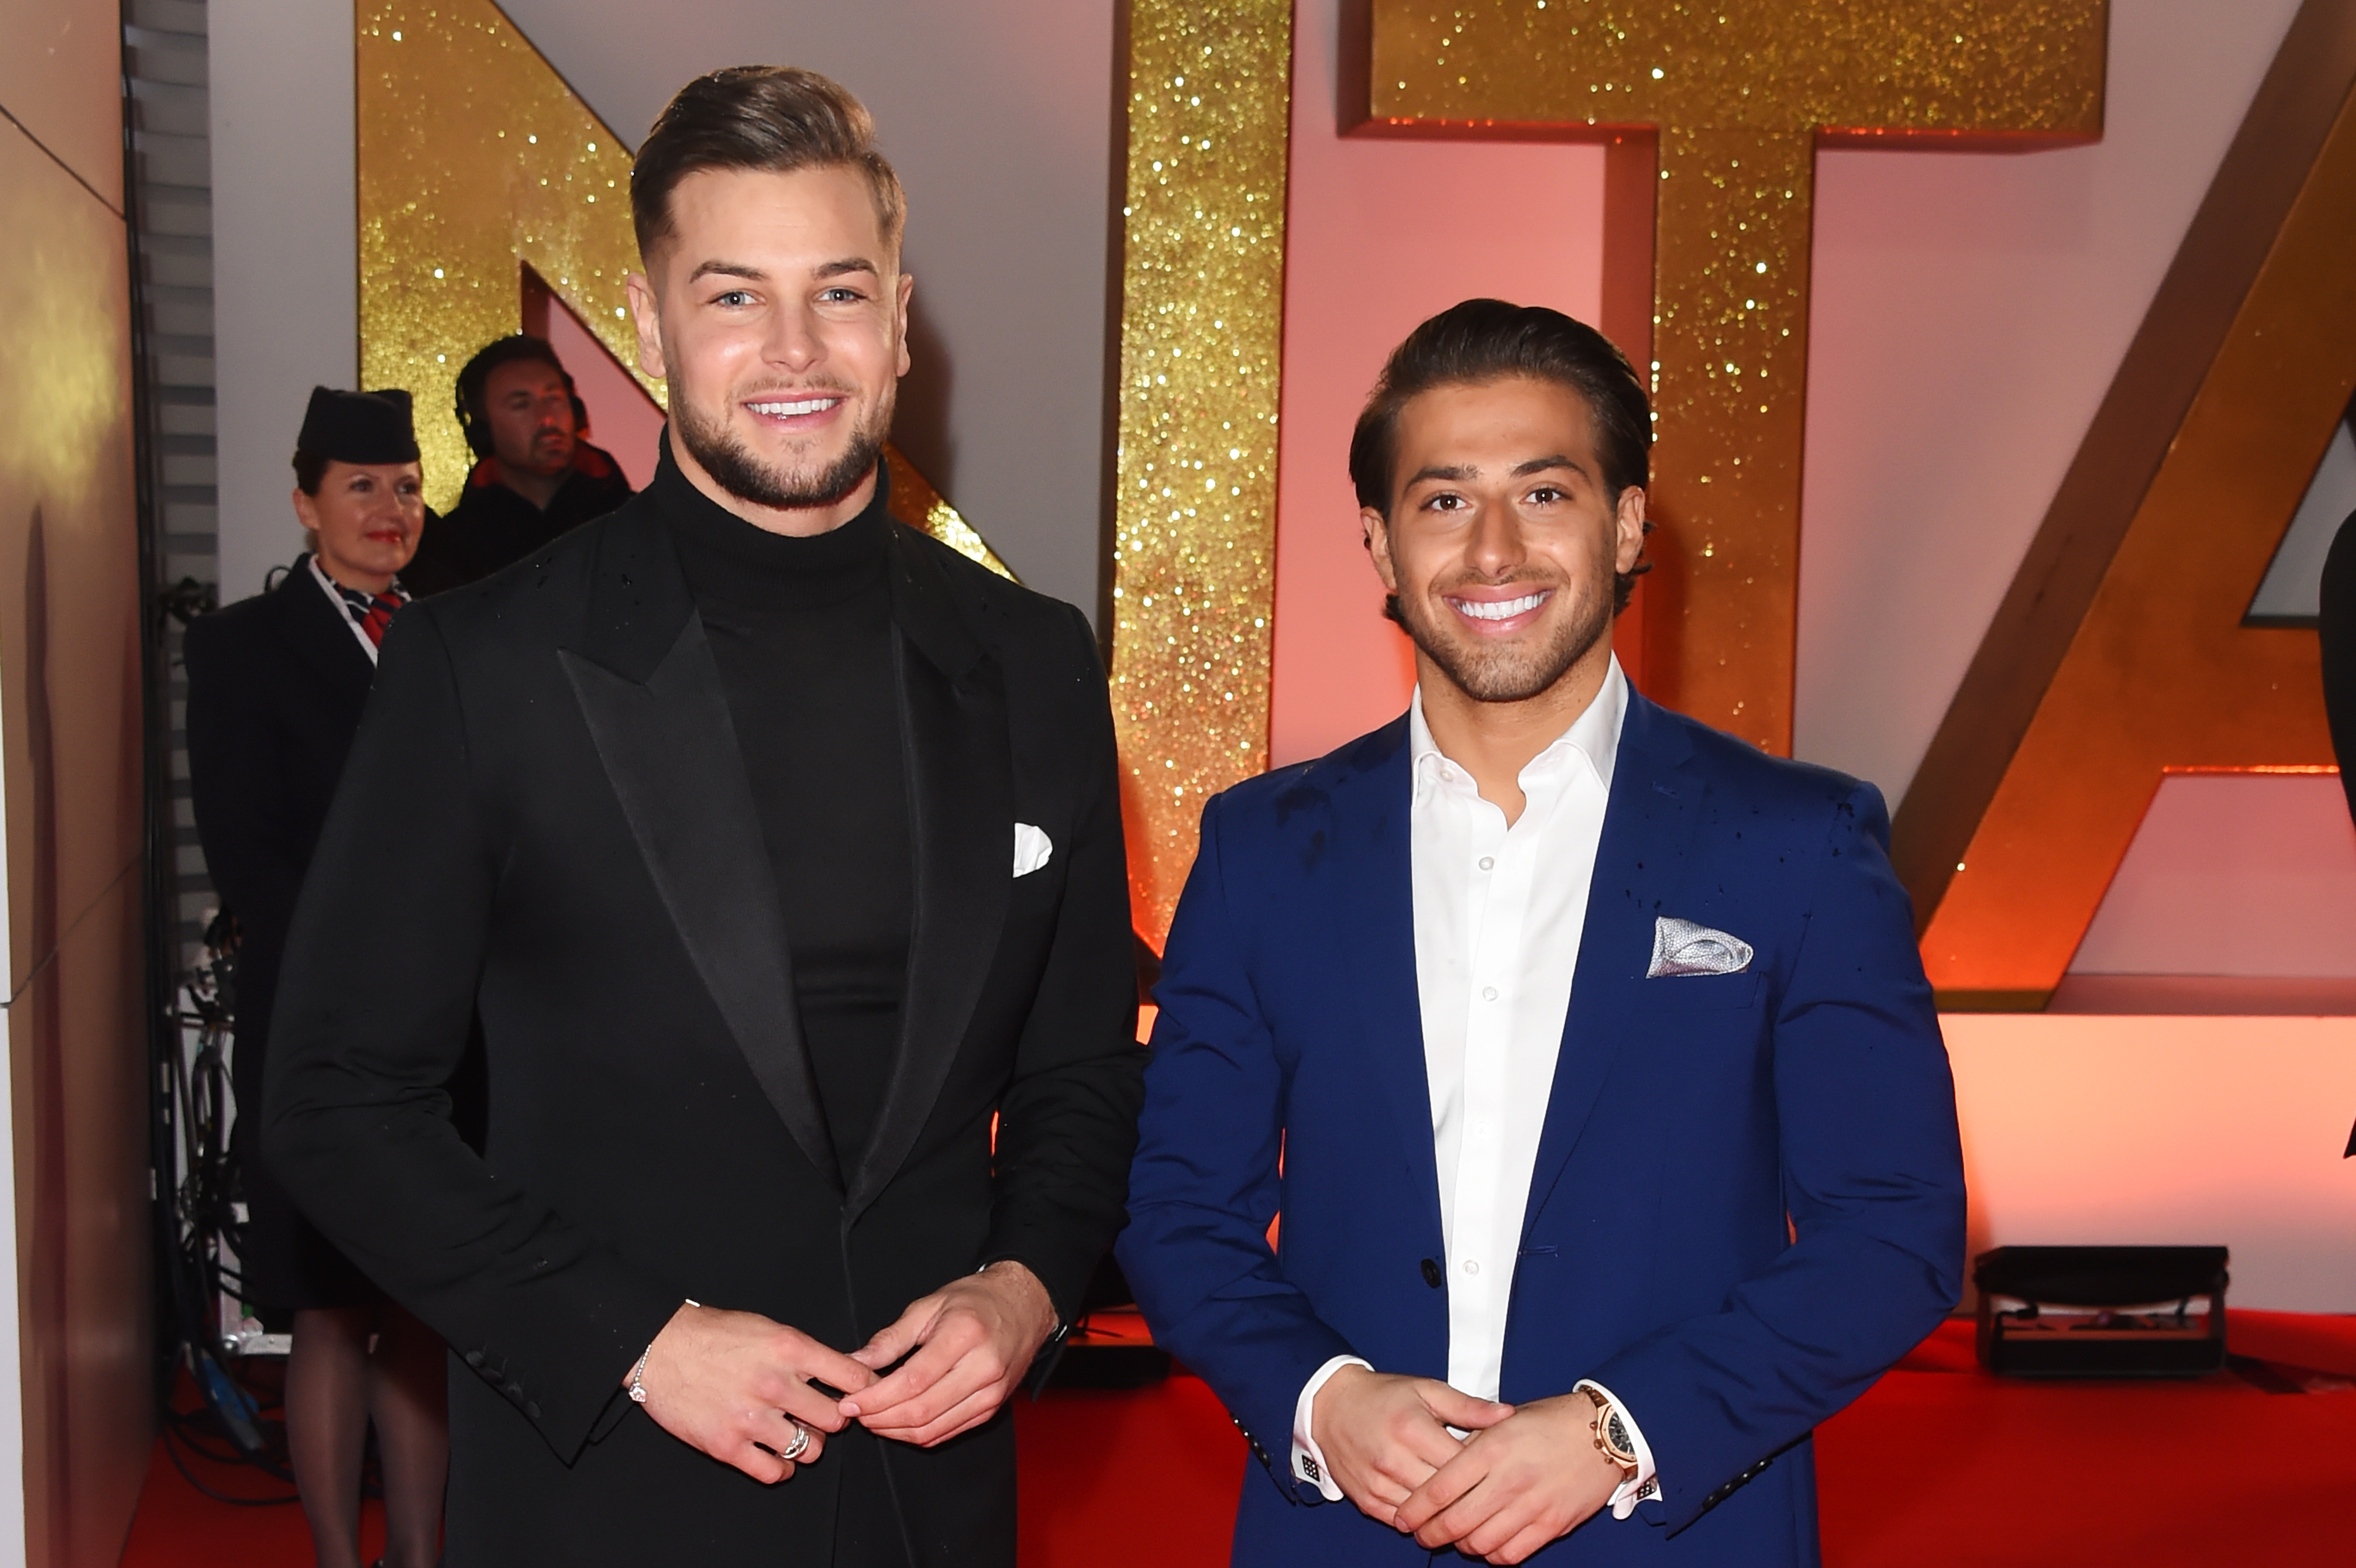 Love Island's Chris Hughes and Kem Cetinay talk stripping off and getting injured for new TV show